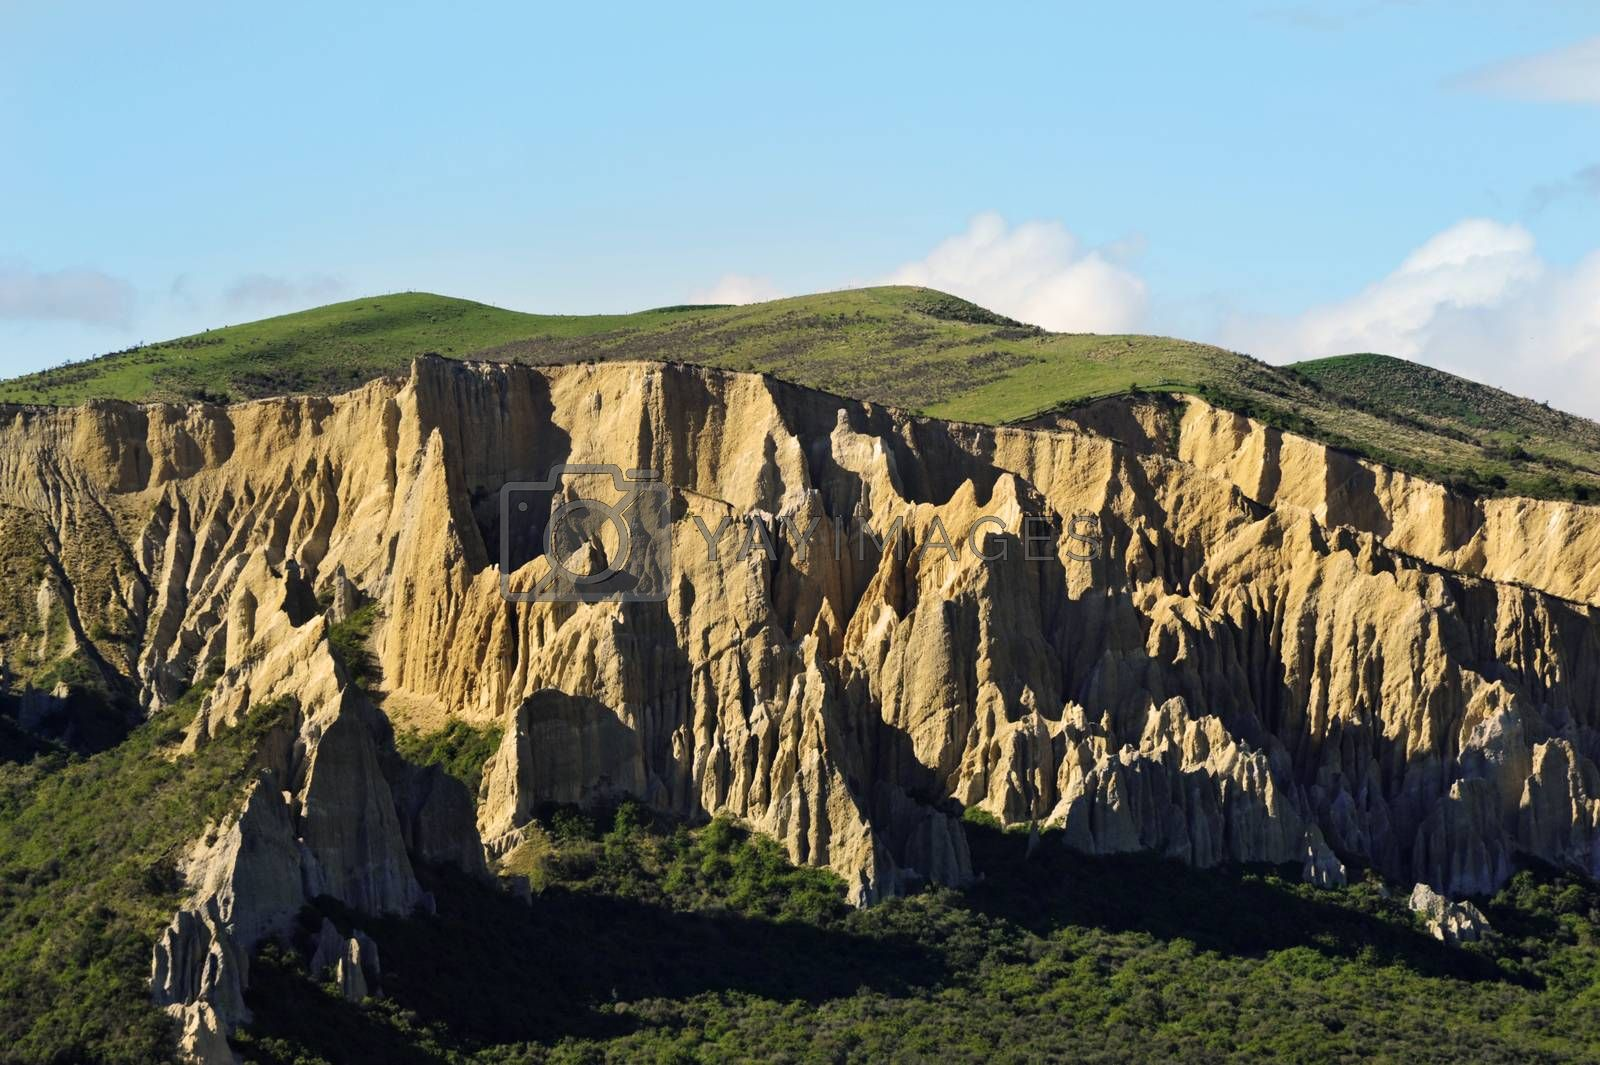 Beautiful teeth-like Clay cliffs of Omarama could be found on the South Island of New Zealand